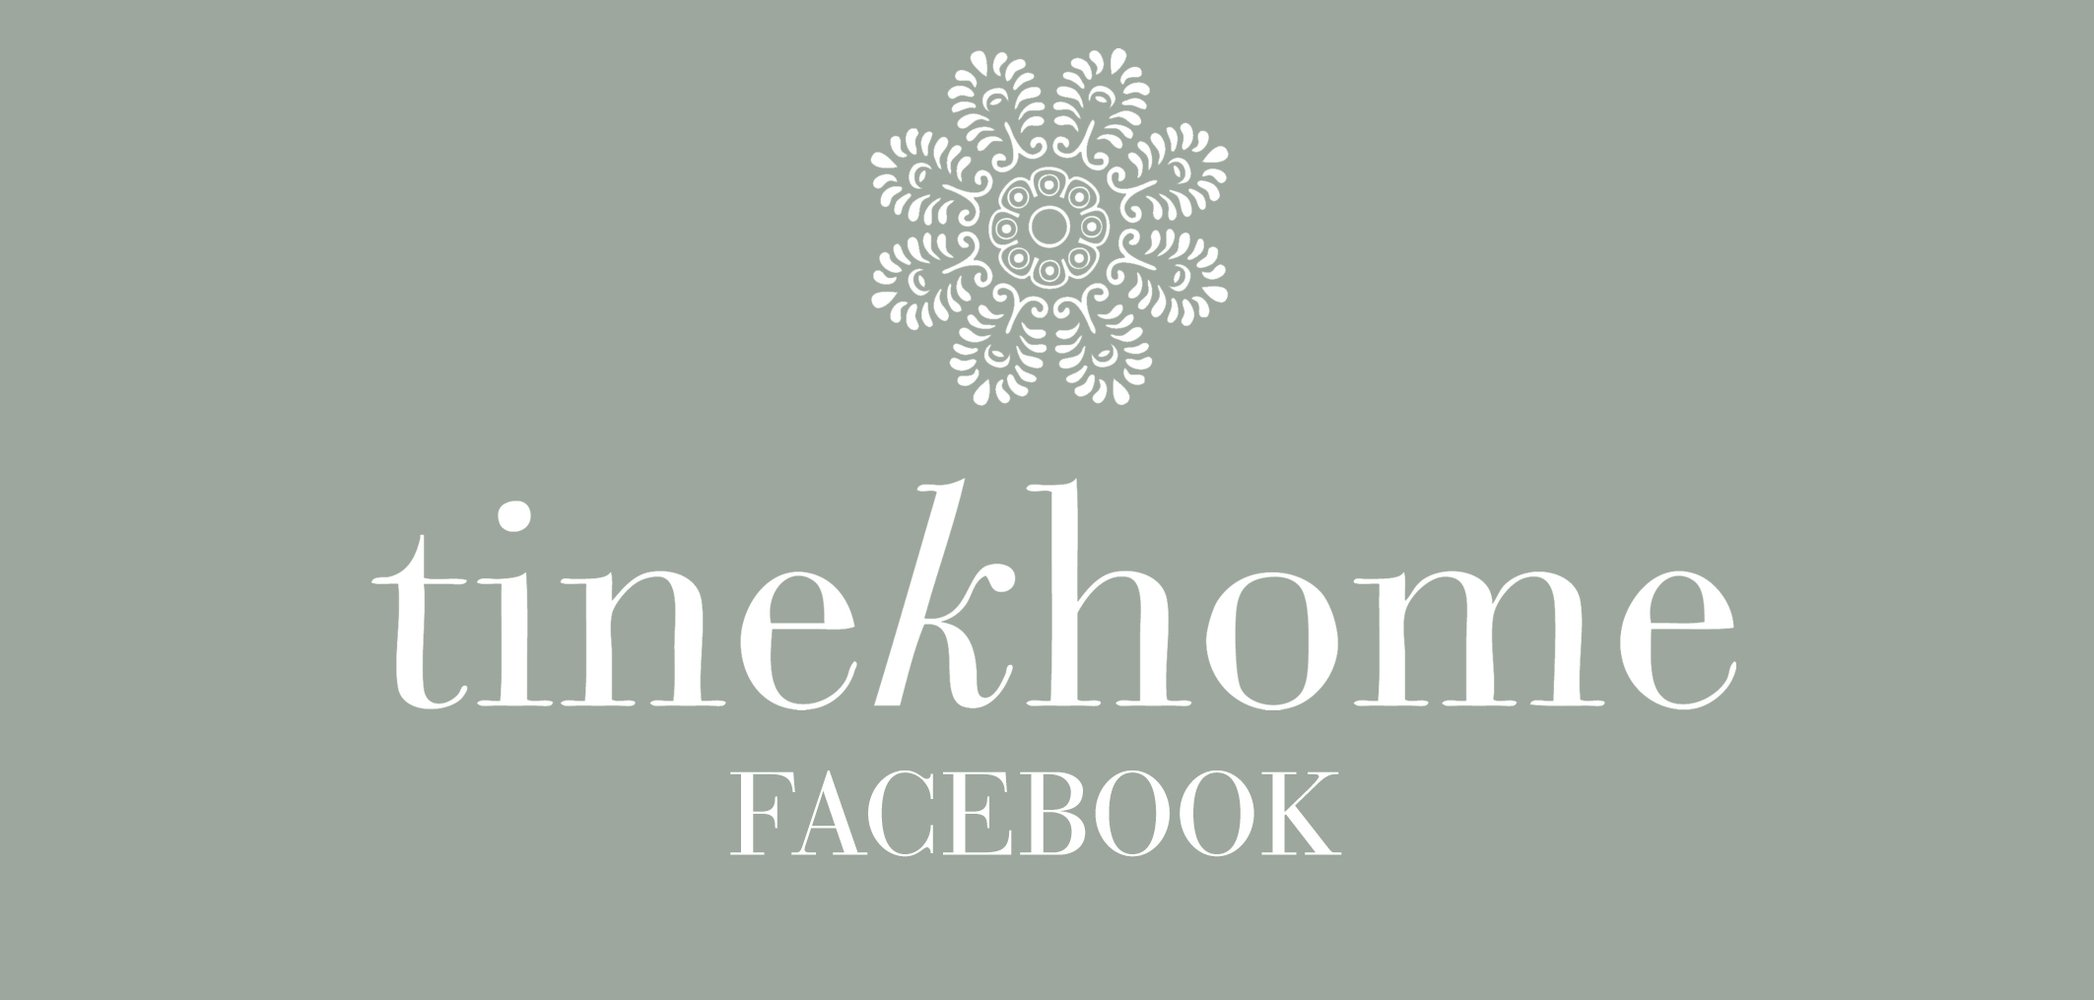 For daily inspiration, please follow tinekhome on Facebook.